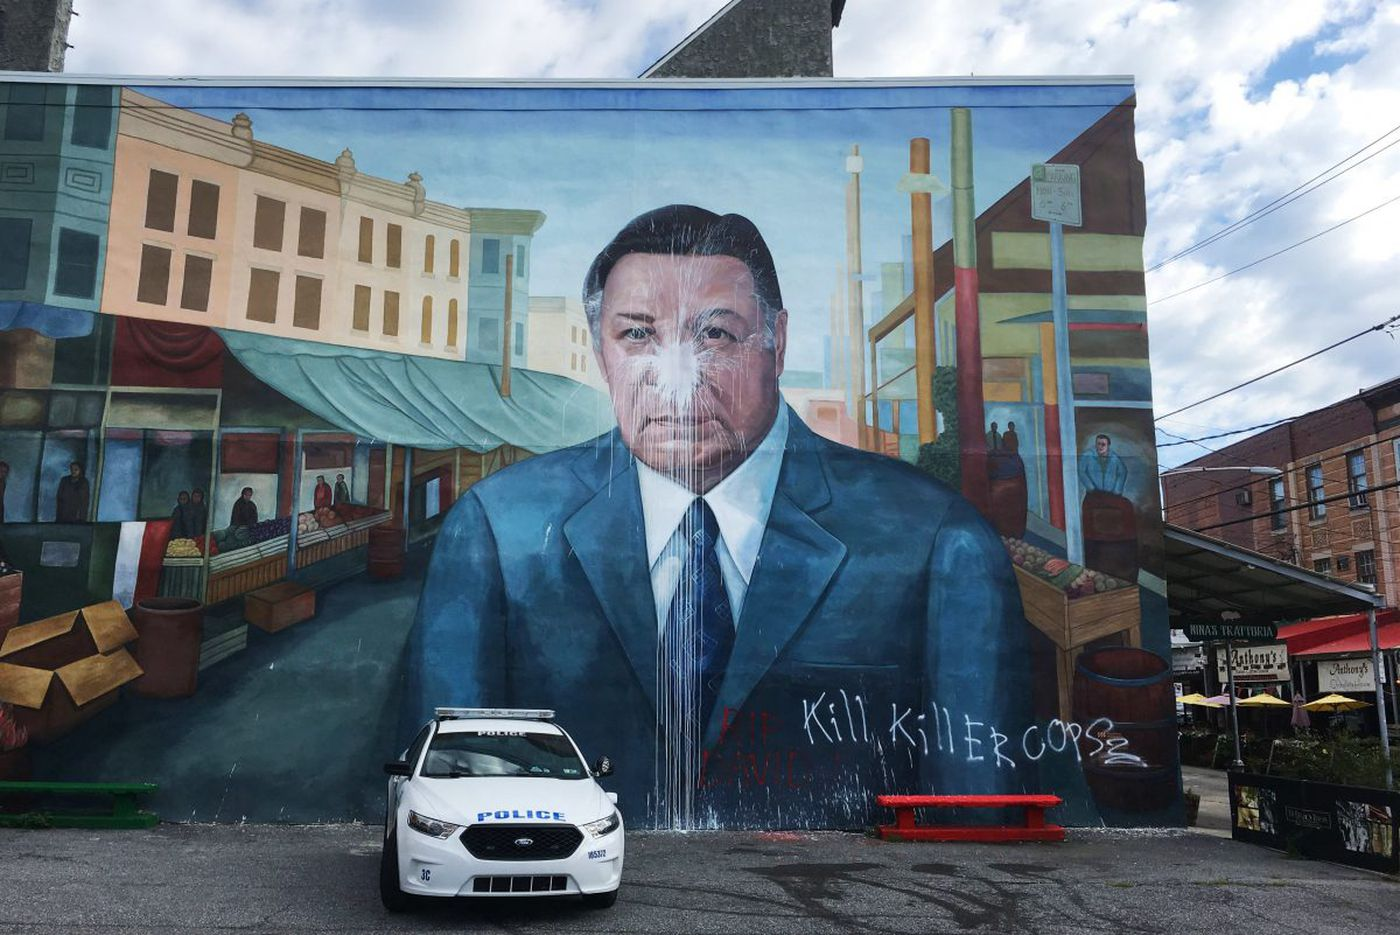 Mural Arts seeking public input on fate of Rizzo mural